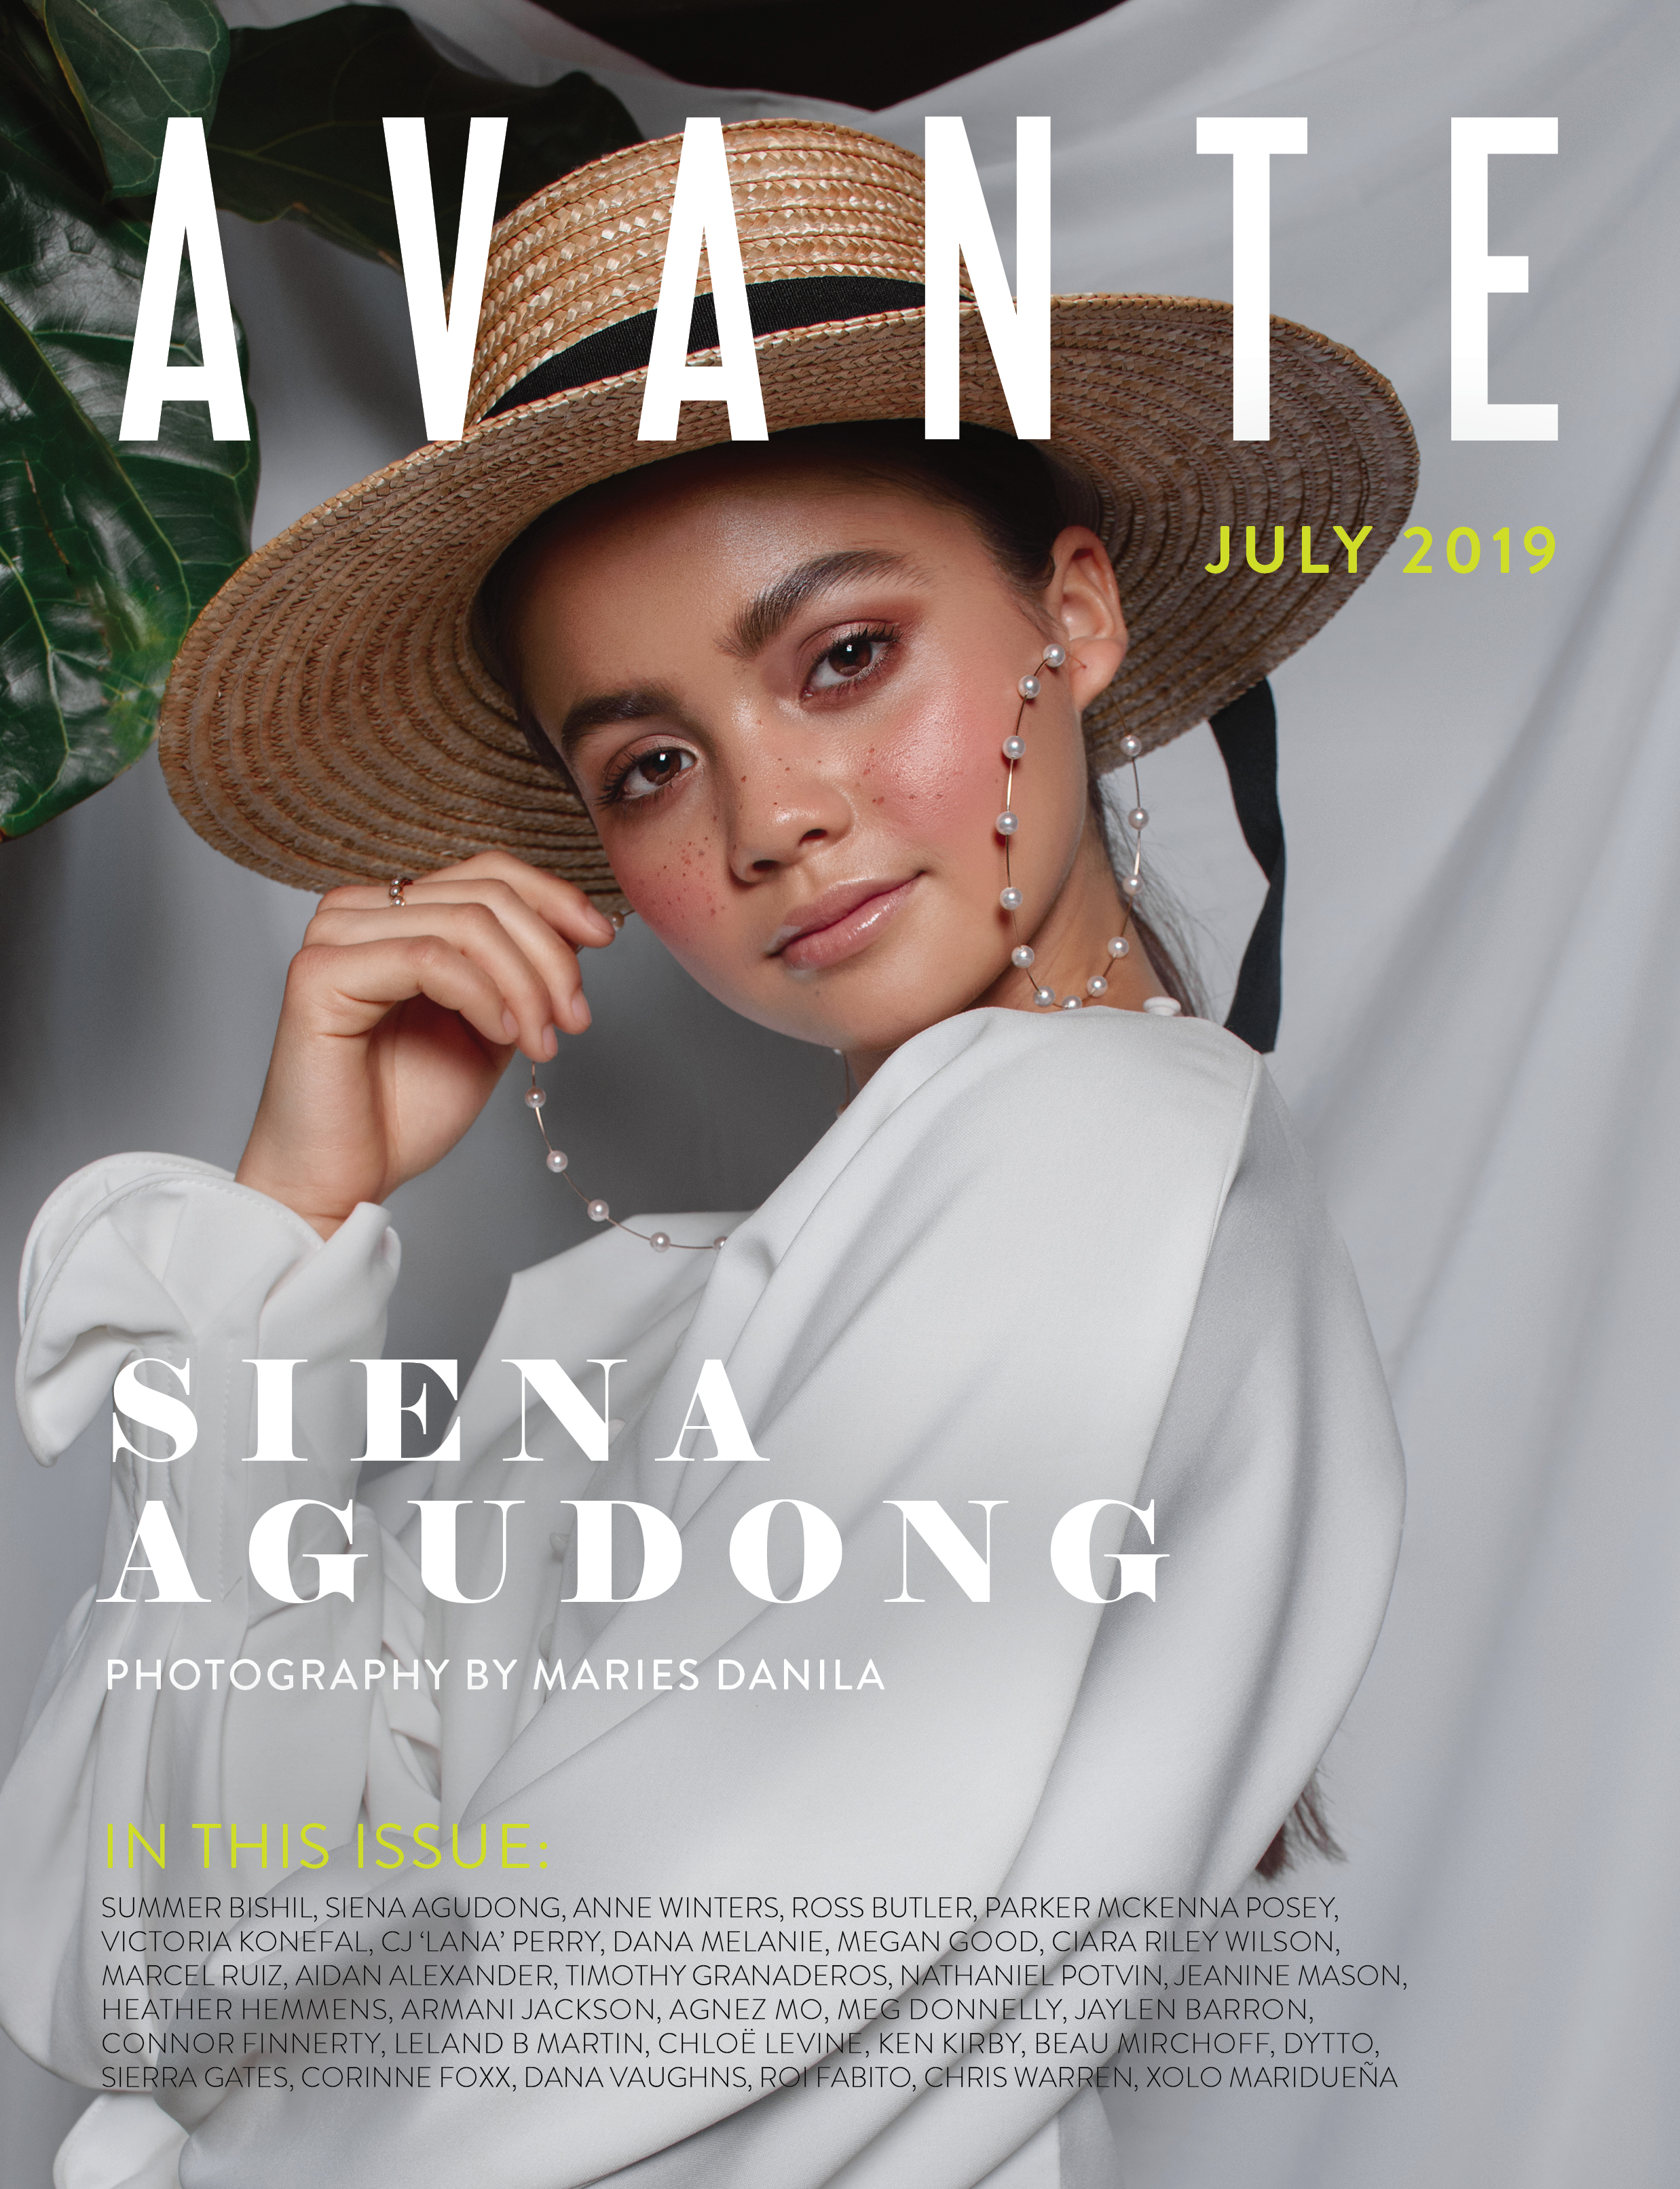 Siena Agudong